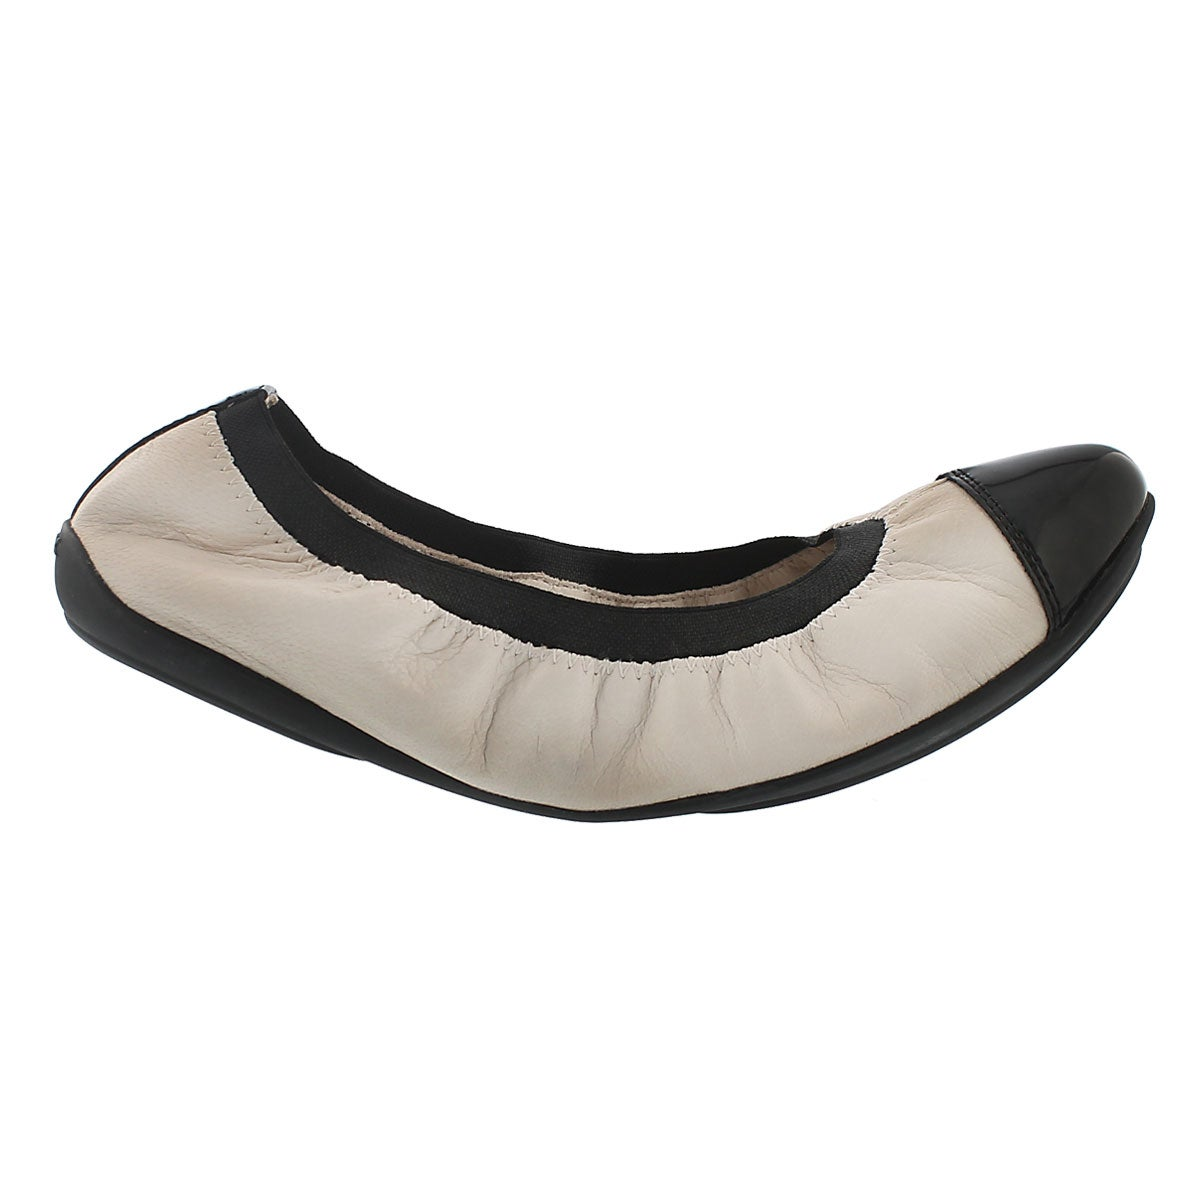 Lds Charlene off white/blk dress flat